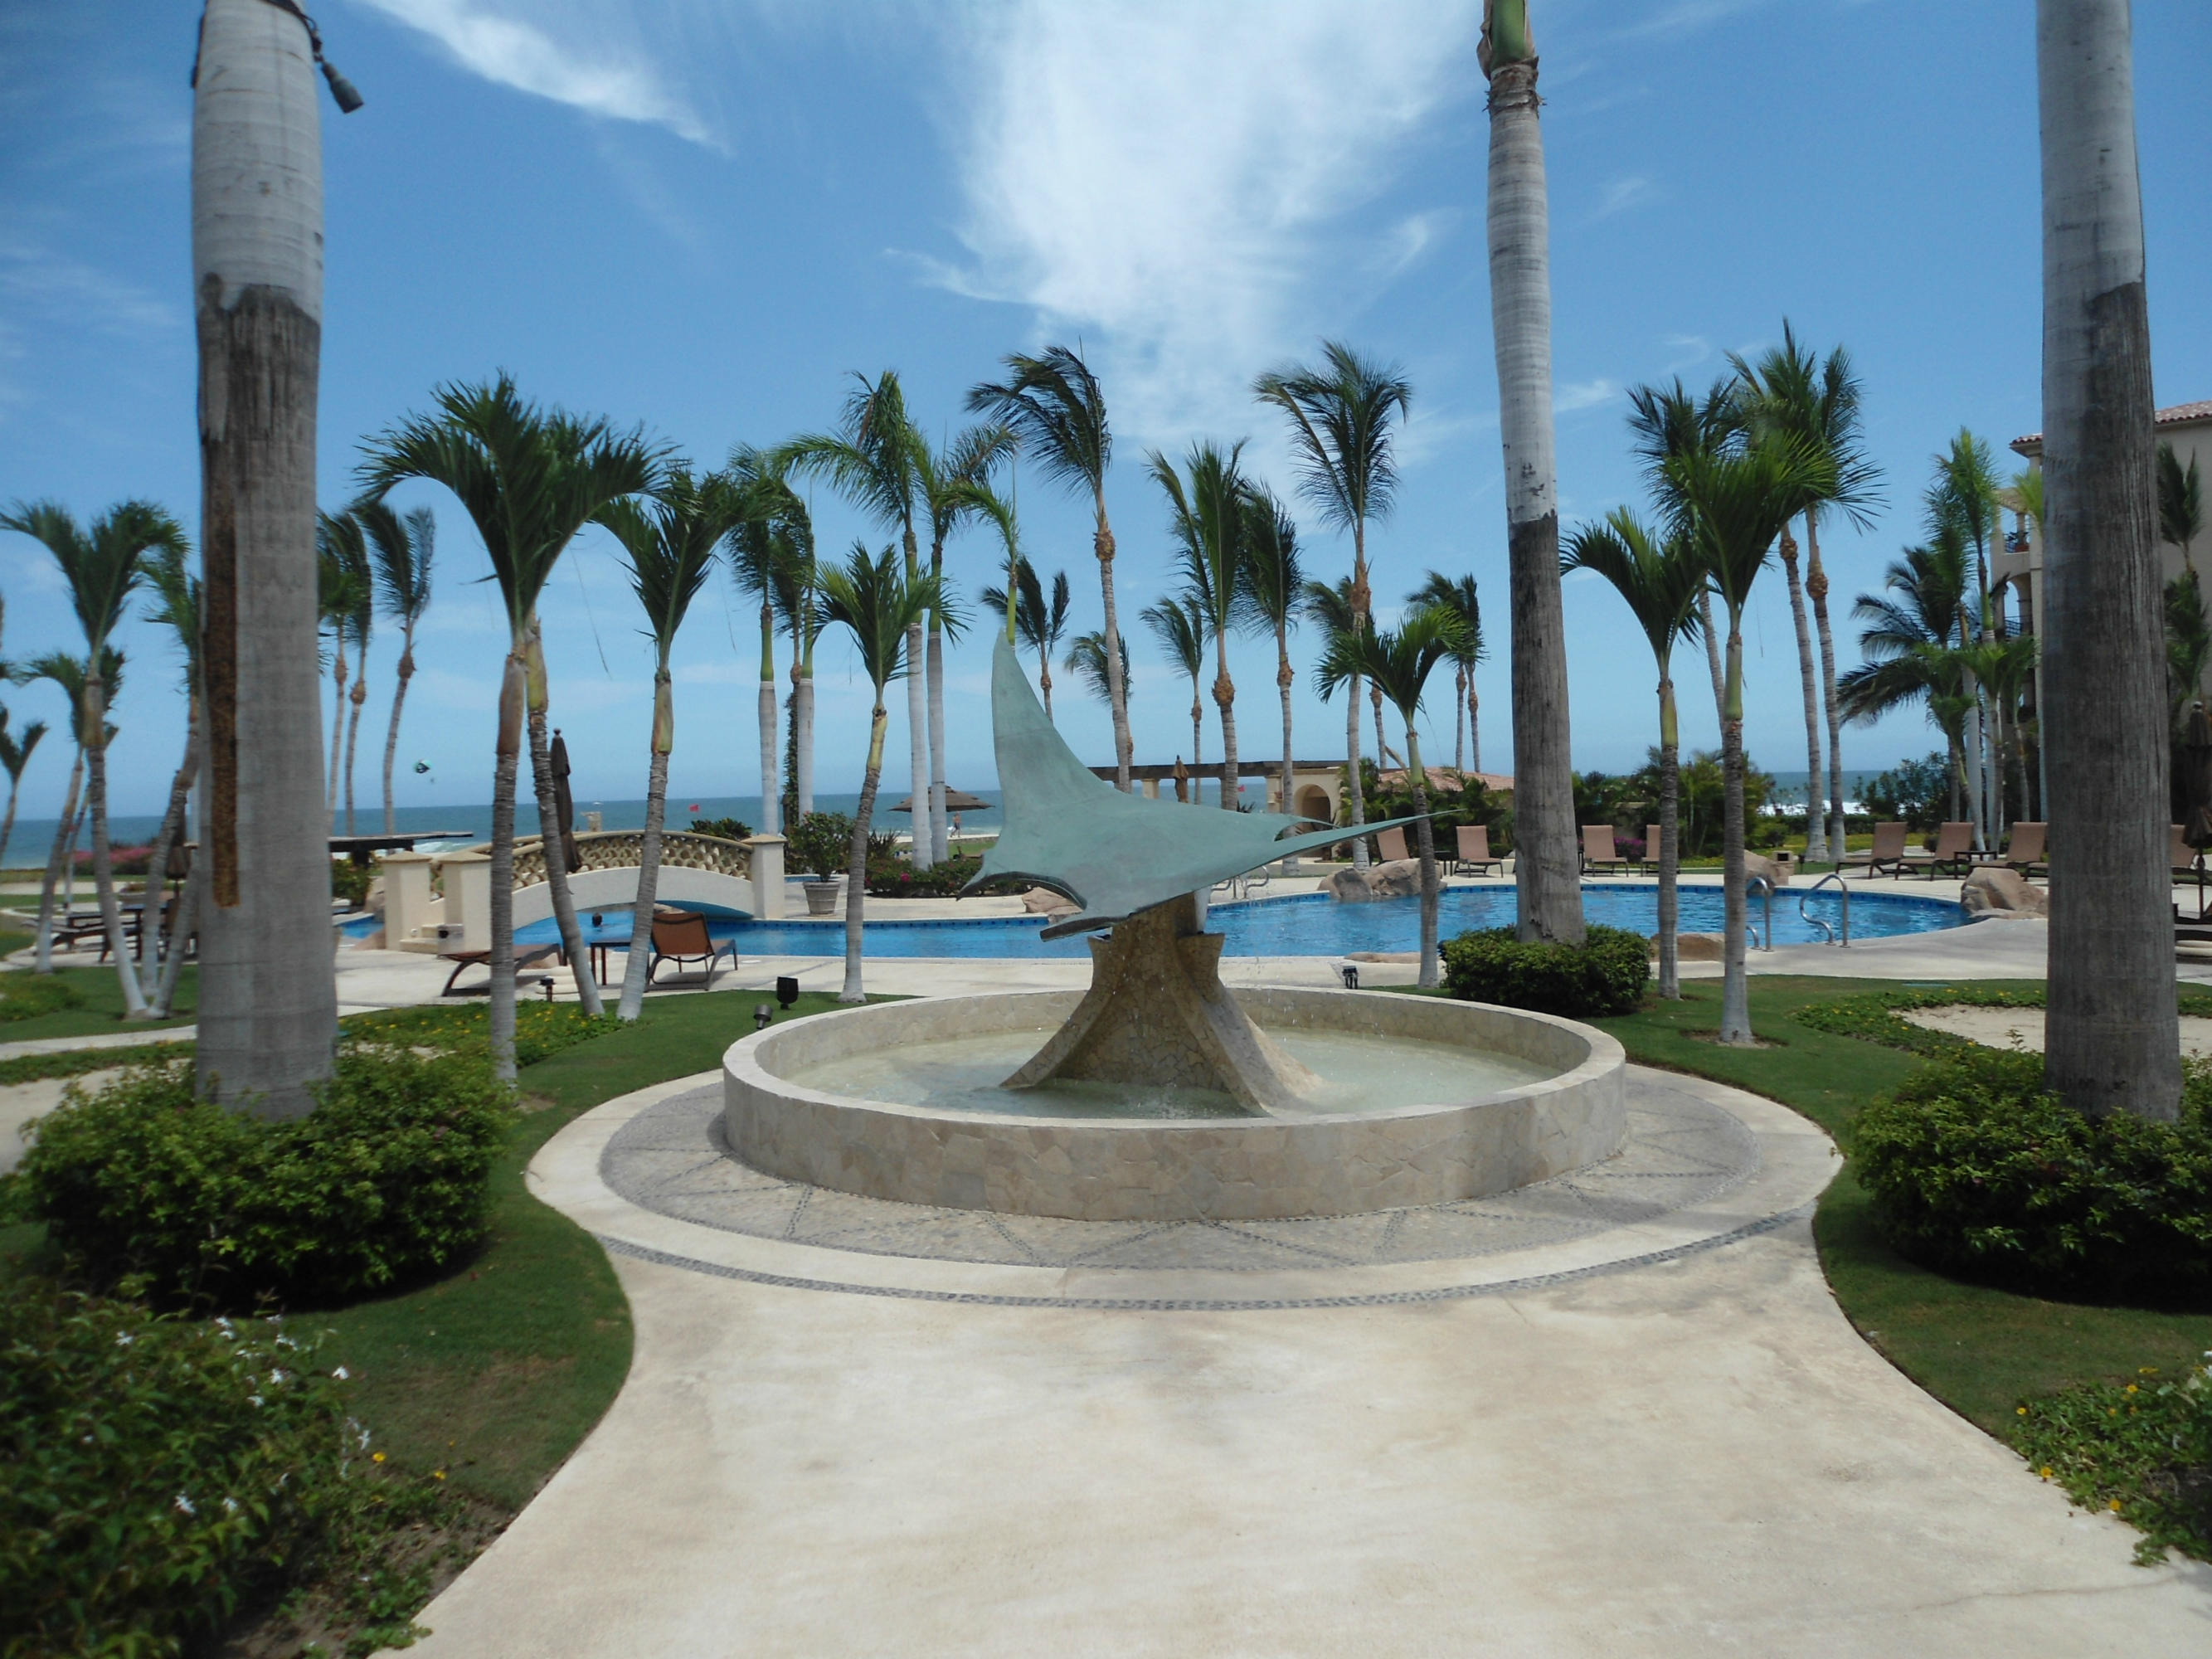 San Jose del Cabo, 3 Bedrooms Bedrooms, 7 Rooms Rooms,3 BathroomsBathrooms,Condo,For Sale,Paseo San Jose,10-2629